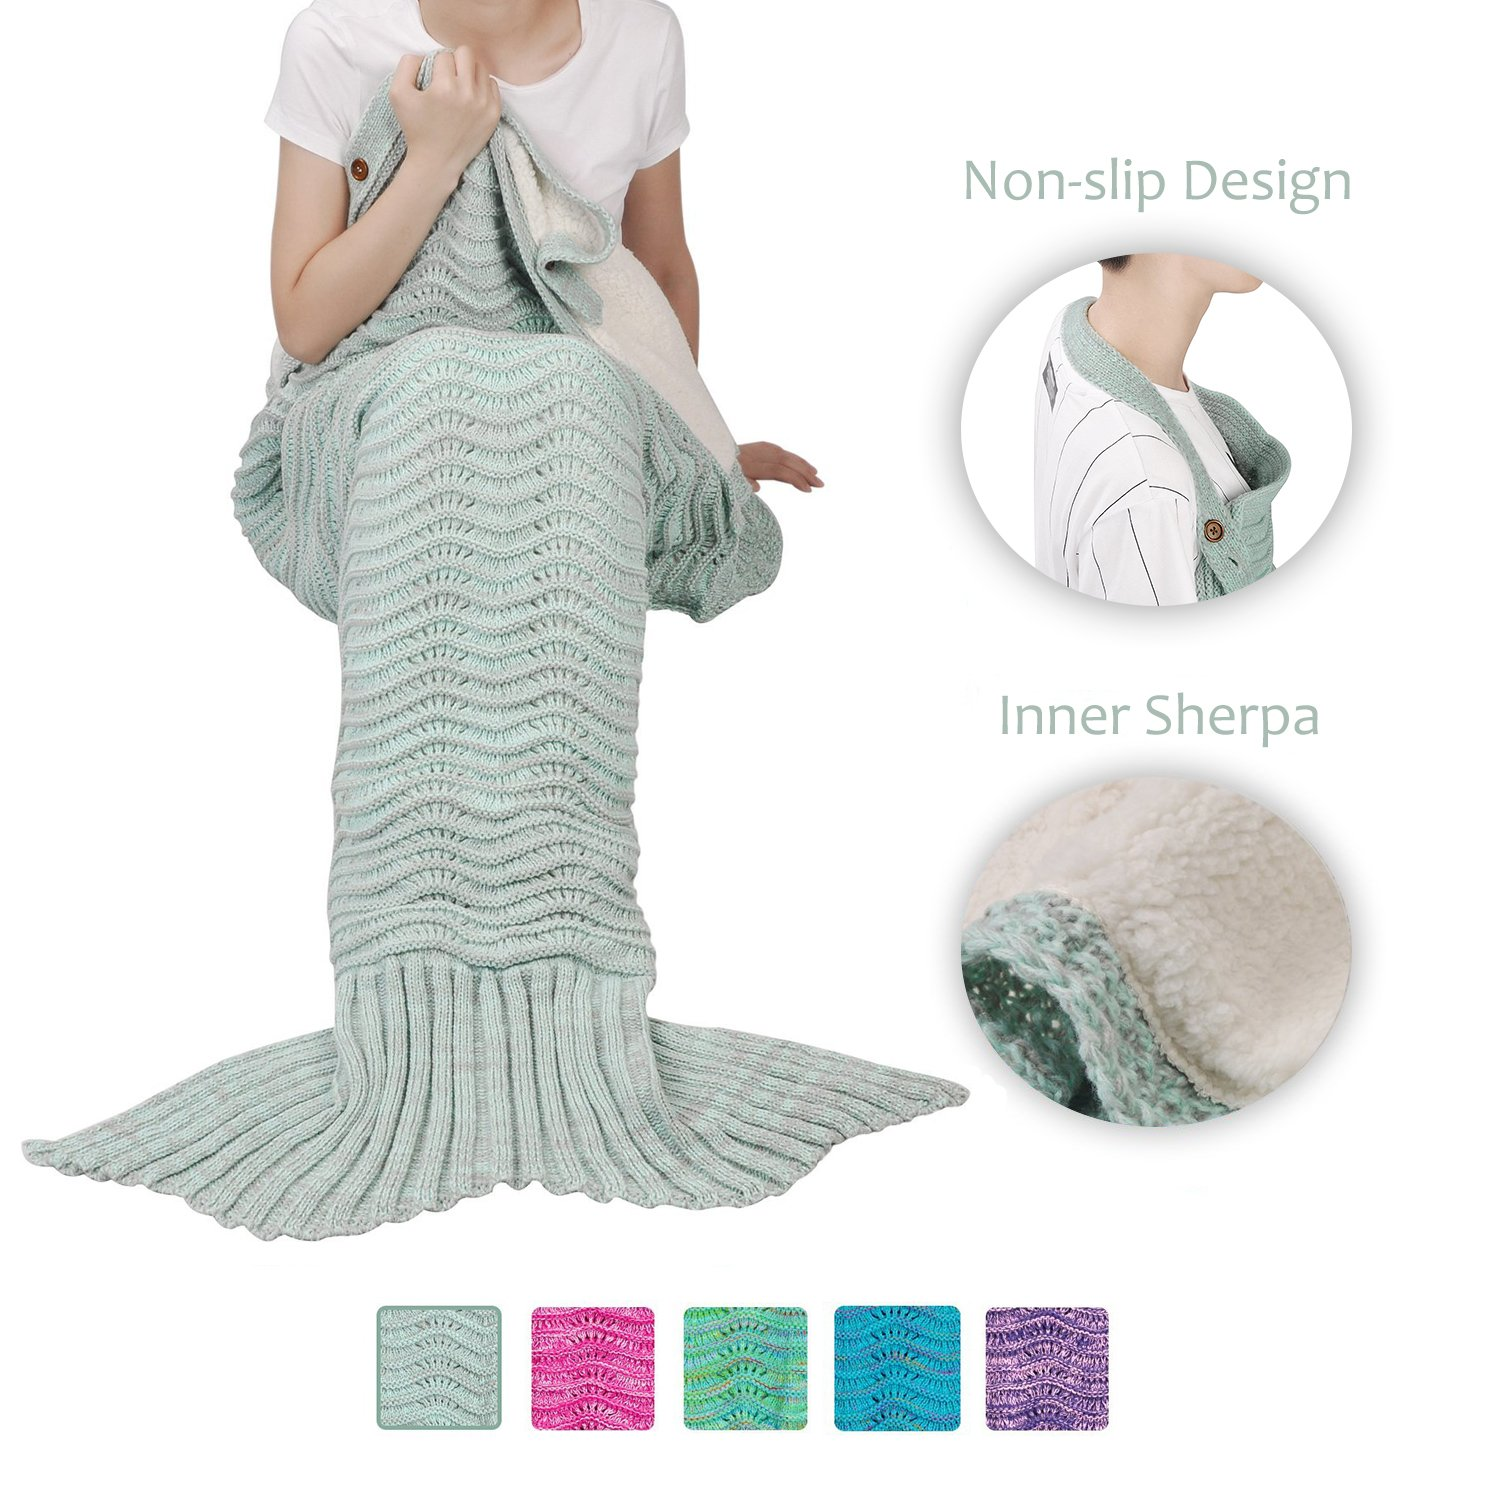 Mermaid Tail Blanket - Mermaid Tail Sherpa Blanket for Adult Women Girls Super Warm Crochet Knitted Mermaid Tail Blanket Anti-slip - Perfect Gift for Birthday Holidays Valentines by Terrania, Grey